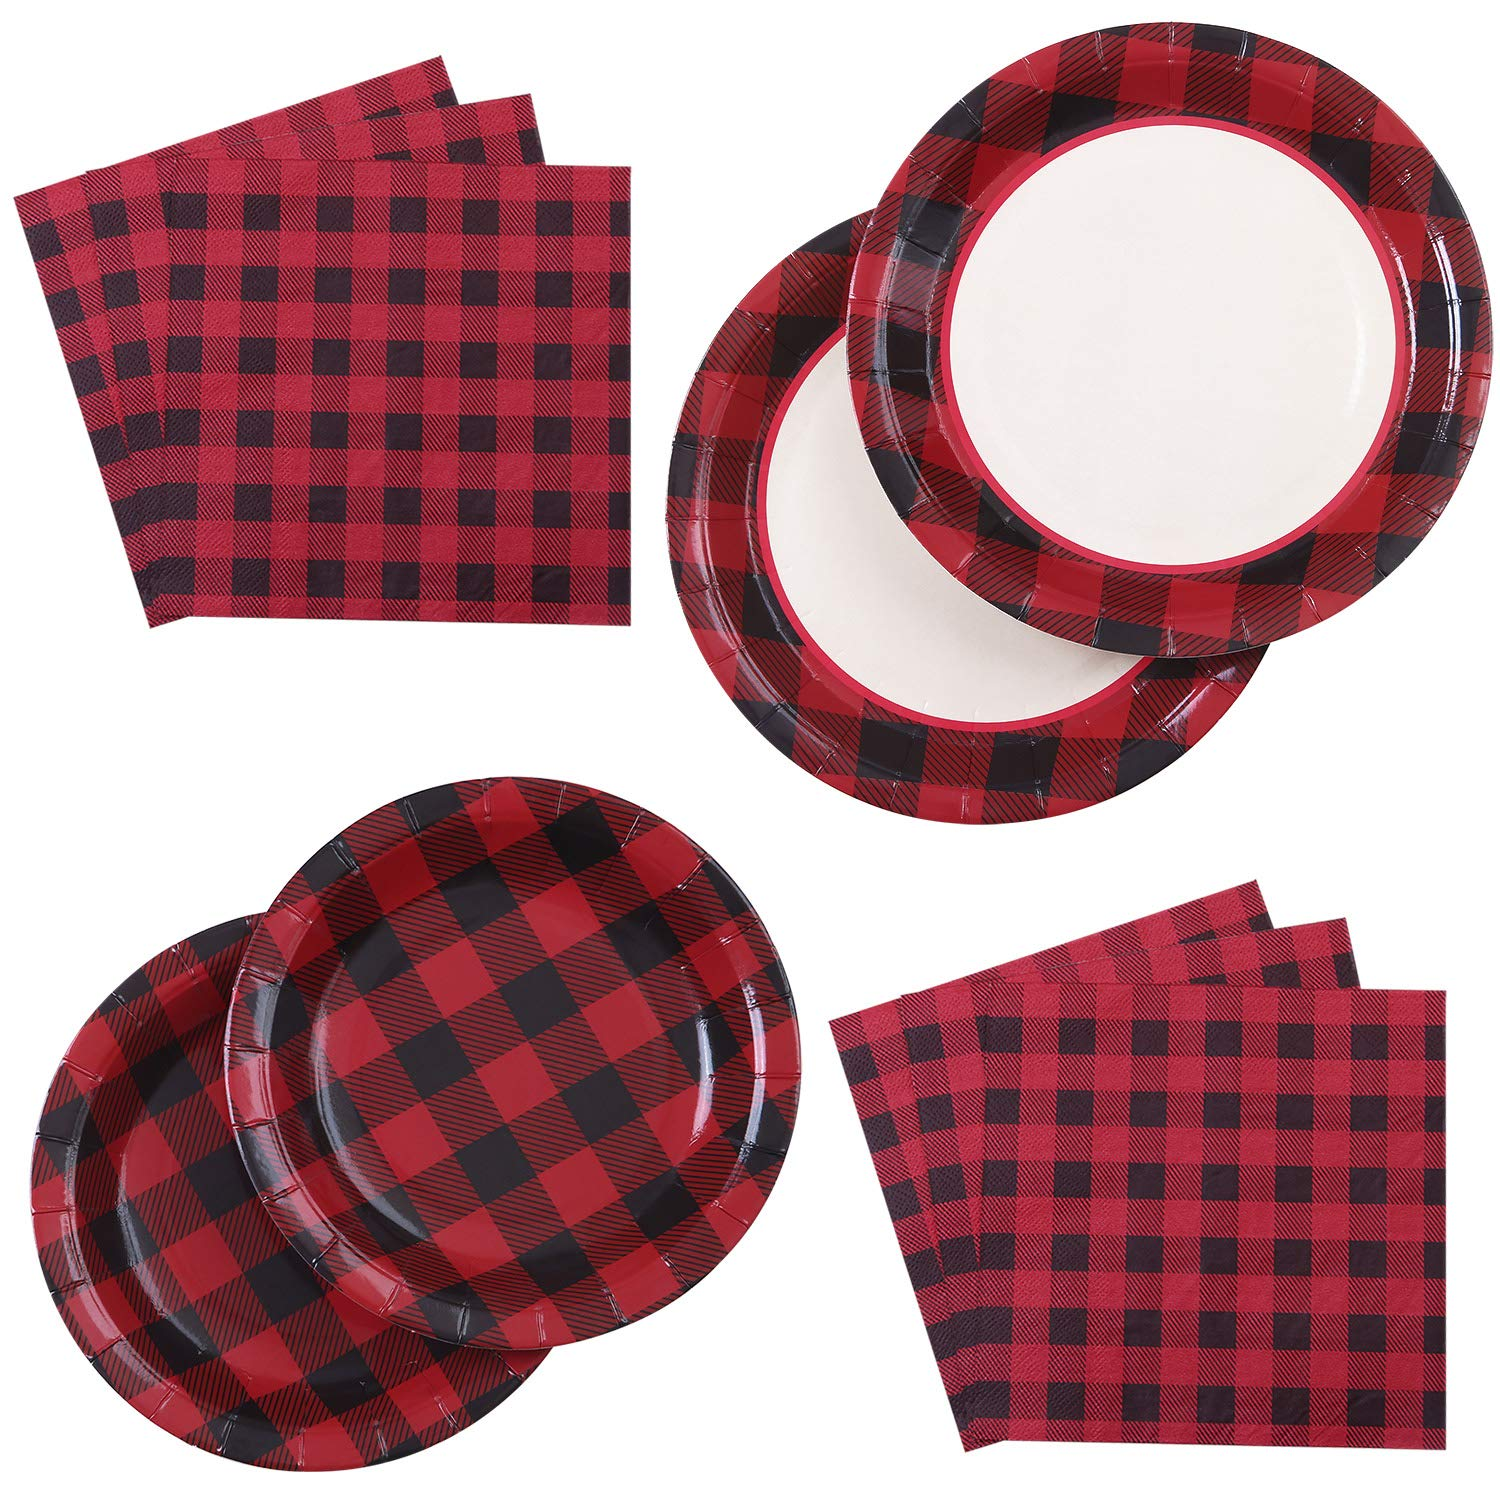 Aneco 98 Pieces Red and Black Plaid Party Supplies Party Tableware Paper Plates and Napkins for 24 Guests by Aneco